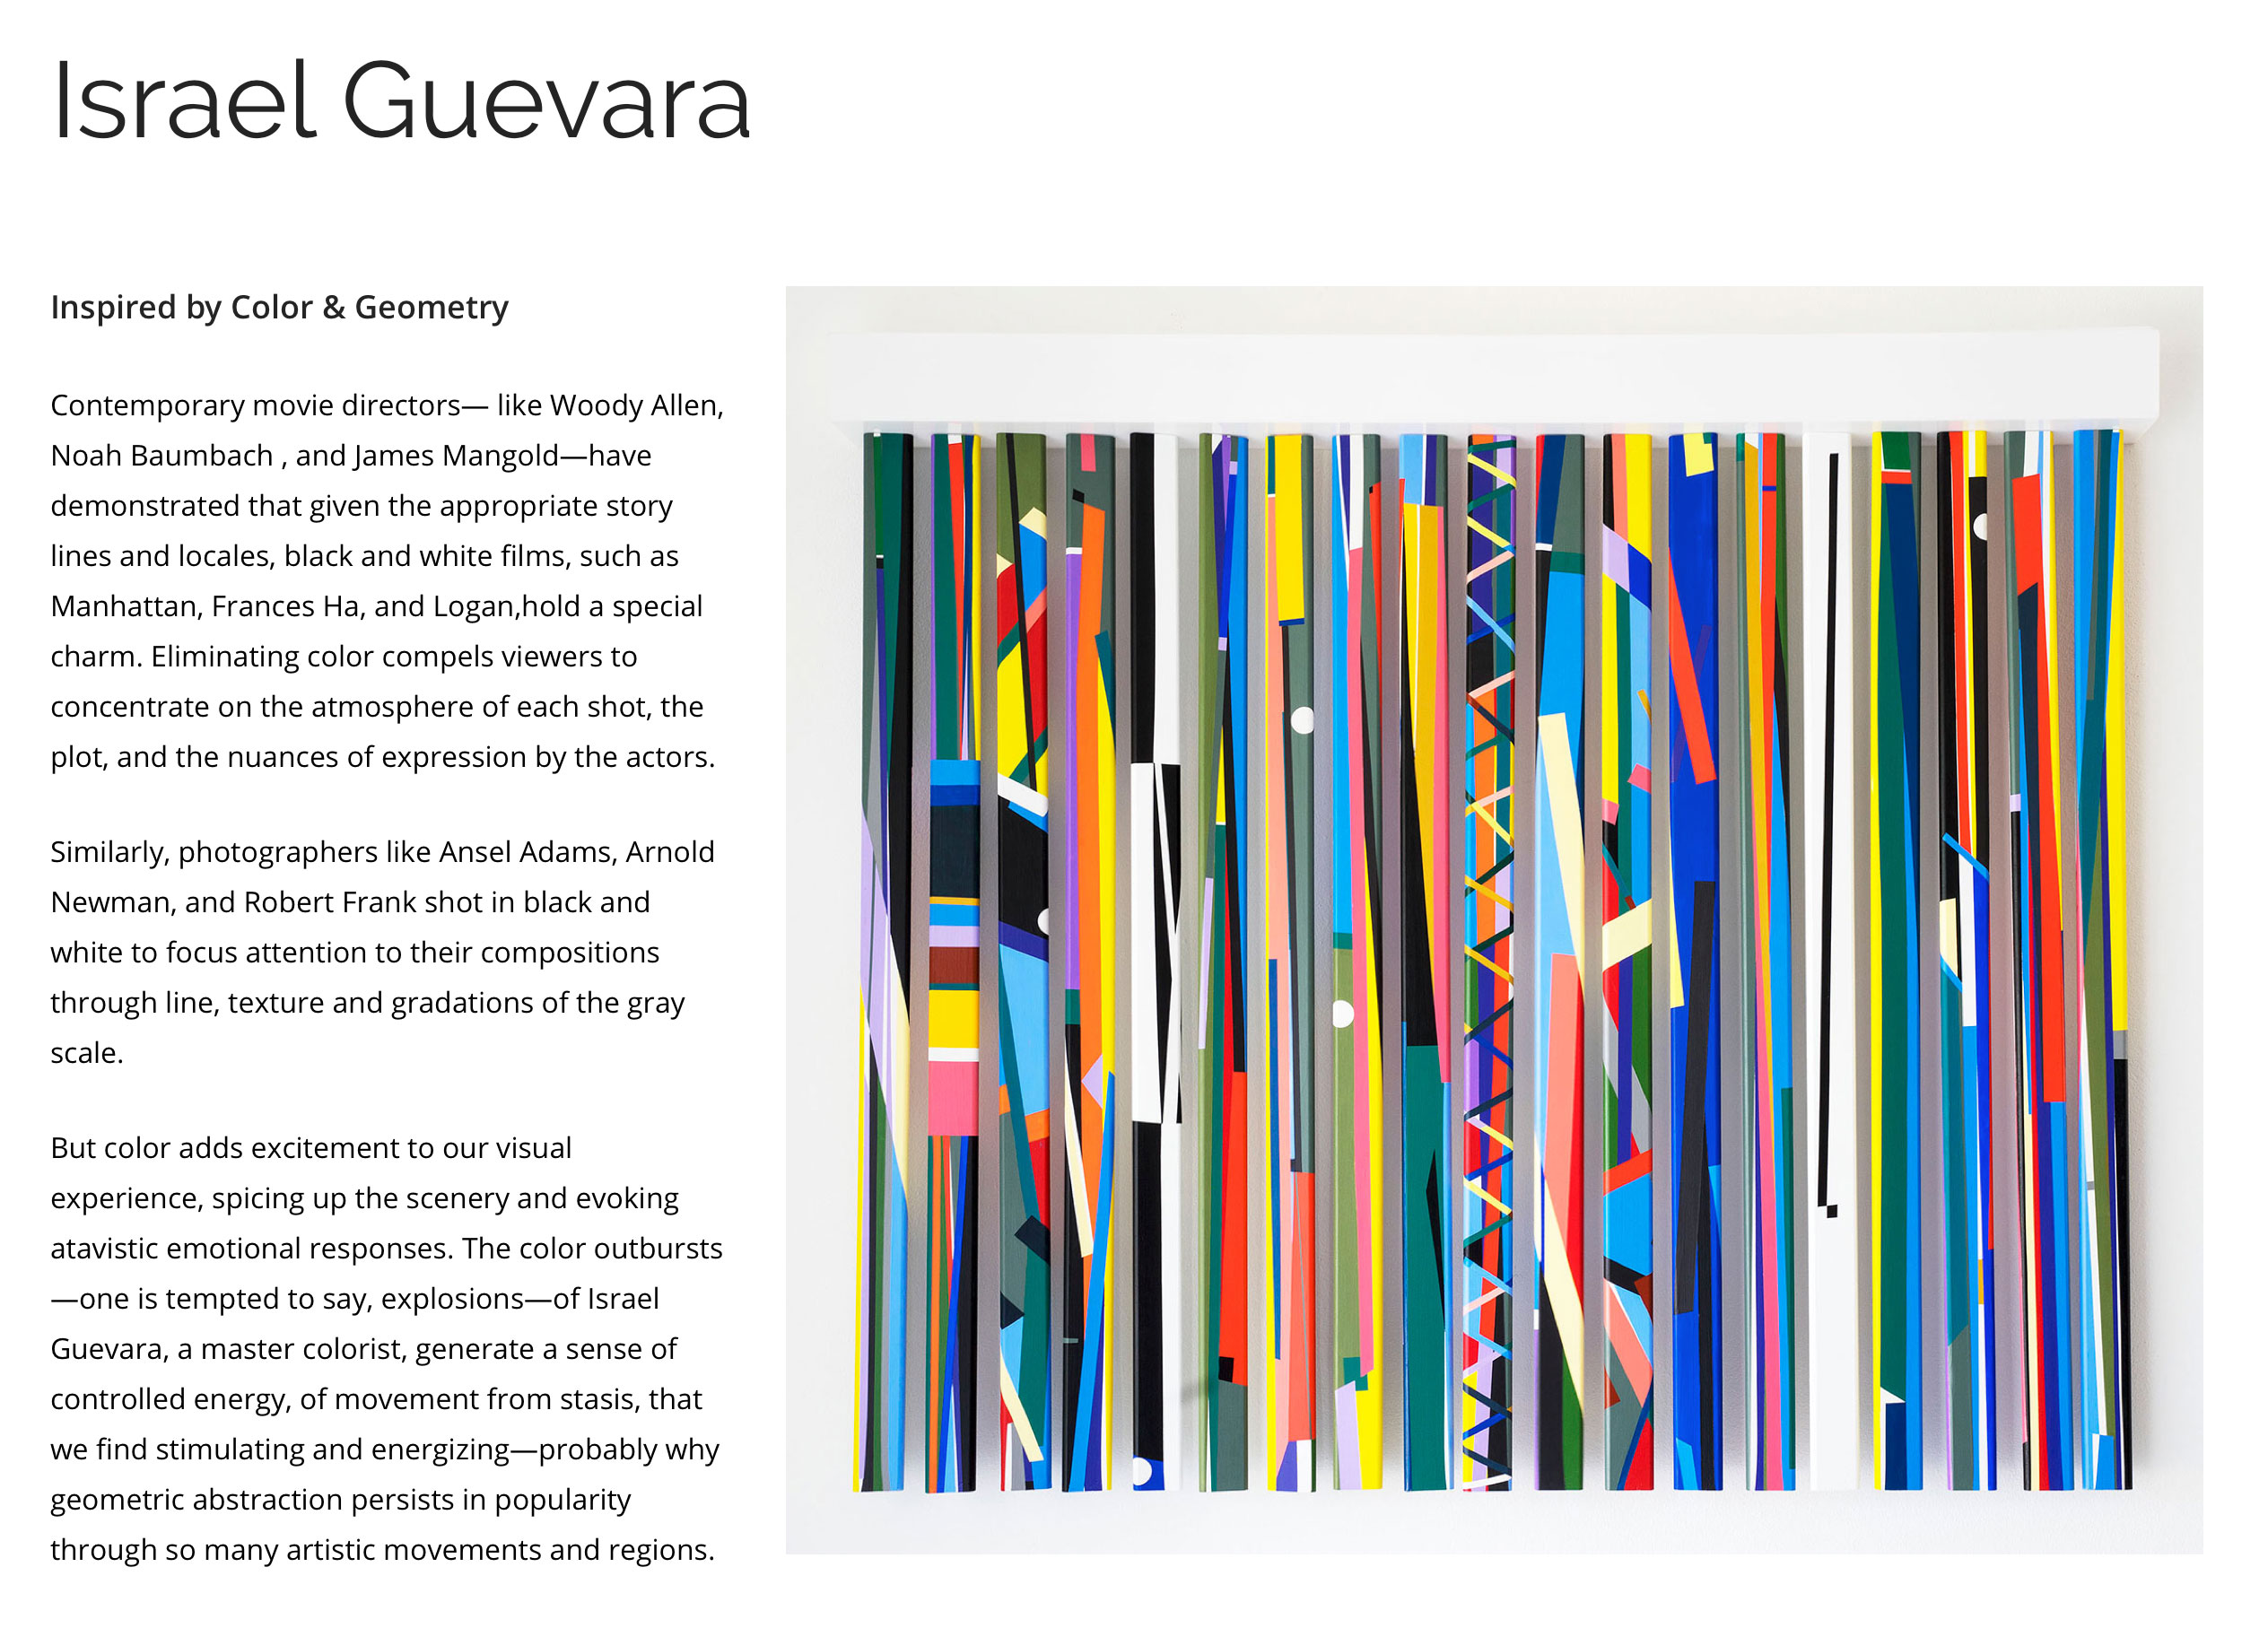 Check out our new artist page for Israel Guevara